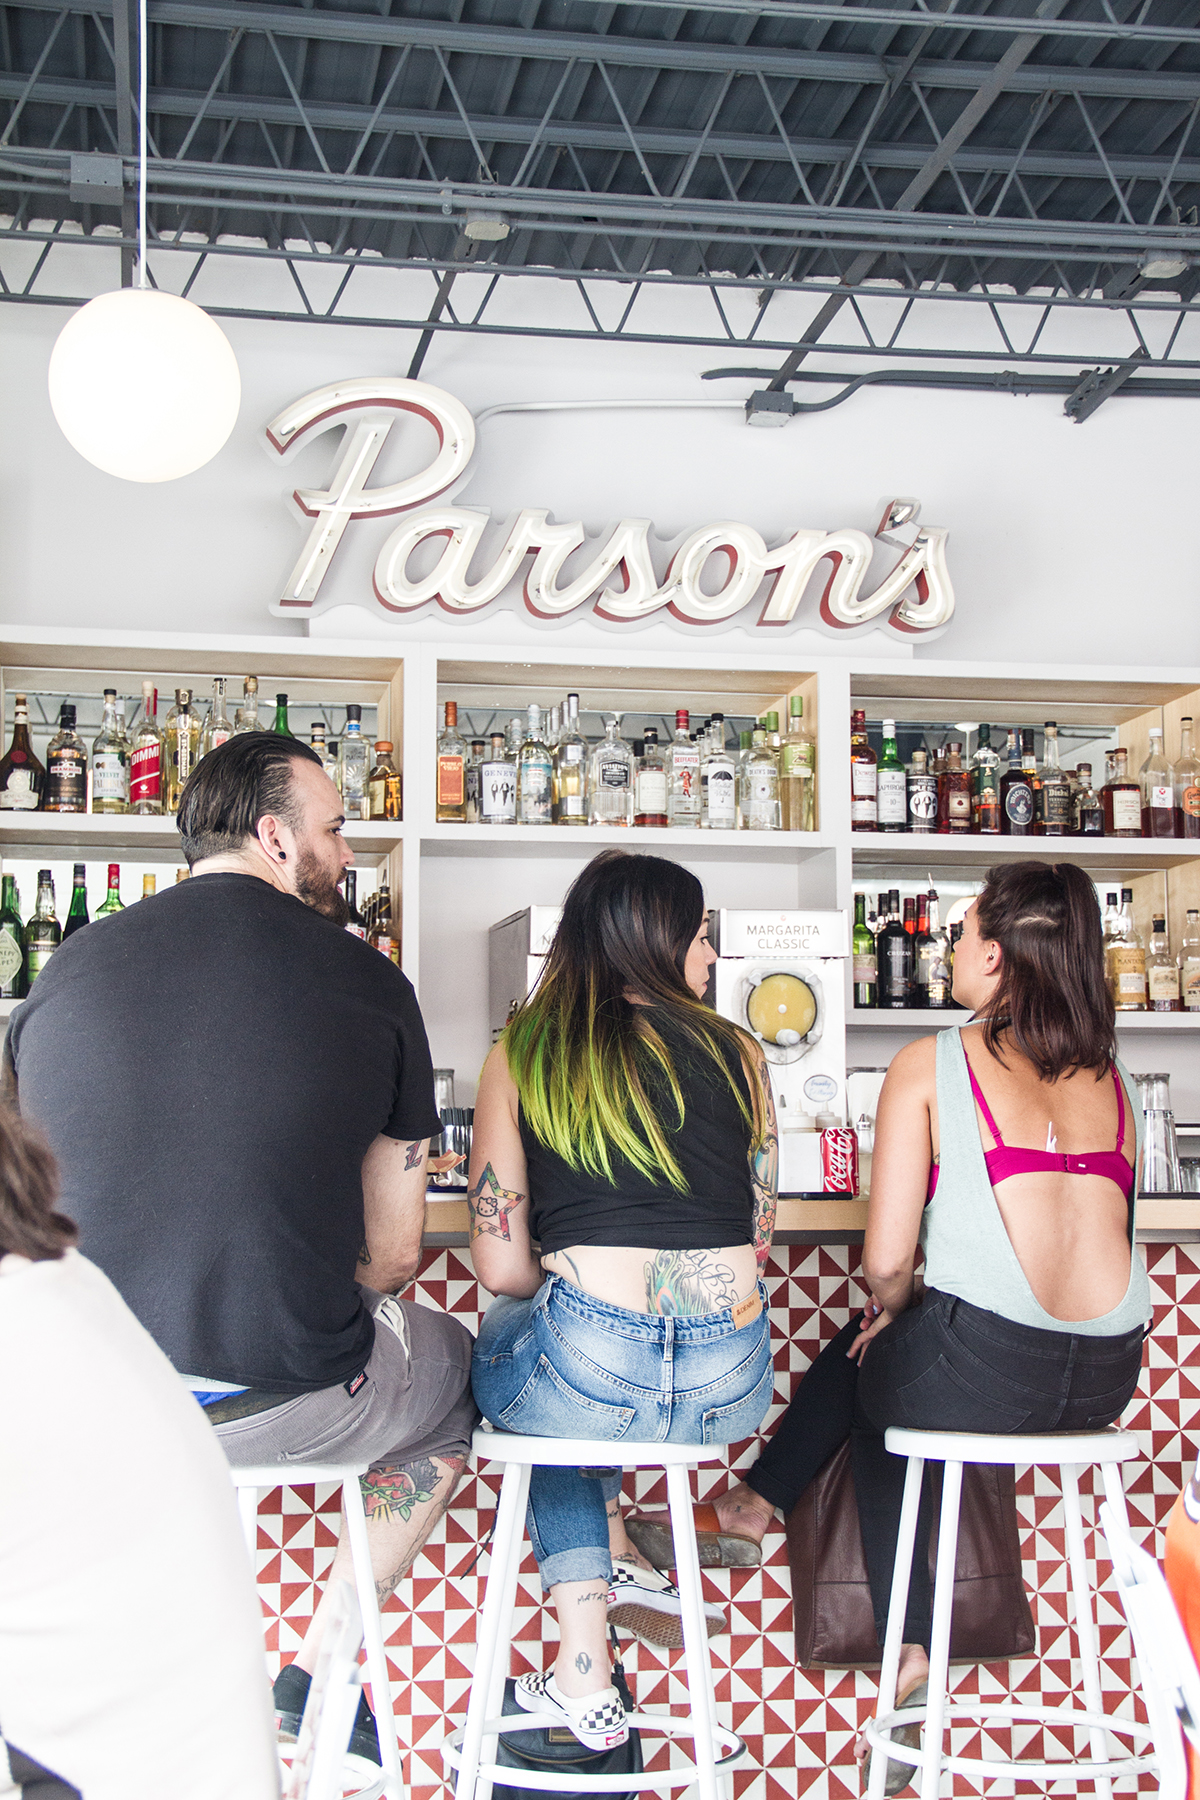 Parson's Chicken & Fish- There are several things that this place just gets right, chicken and fish being two of them, of course. But you'd be remiss if you ignored their amazing frozen negroni and the utterly addictive pimento toast! 2952 W Armitage Ave.